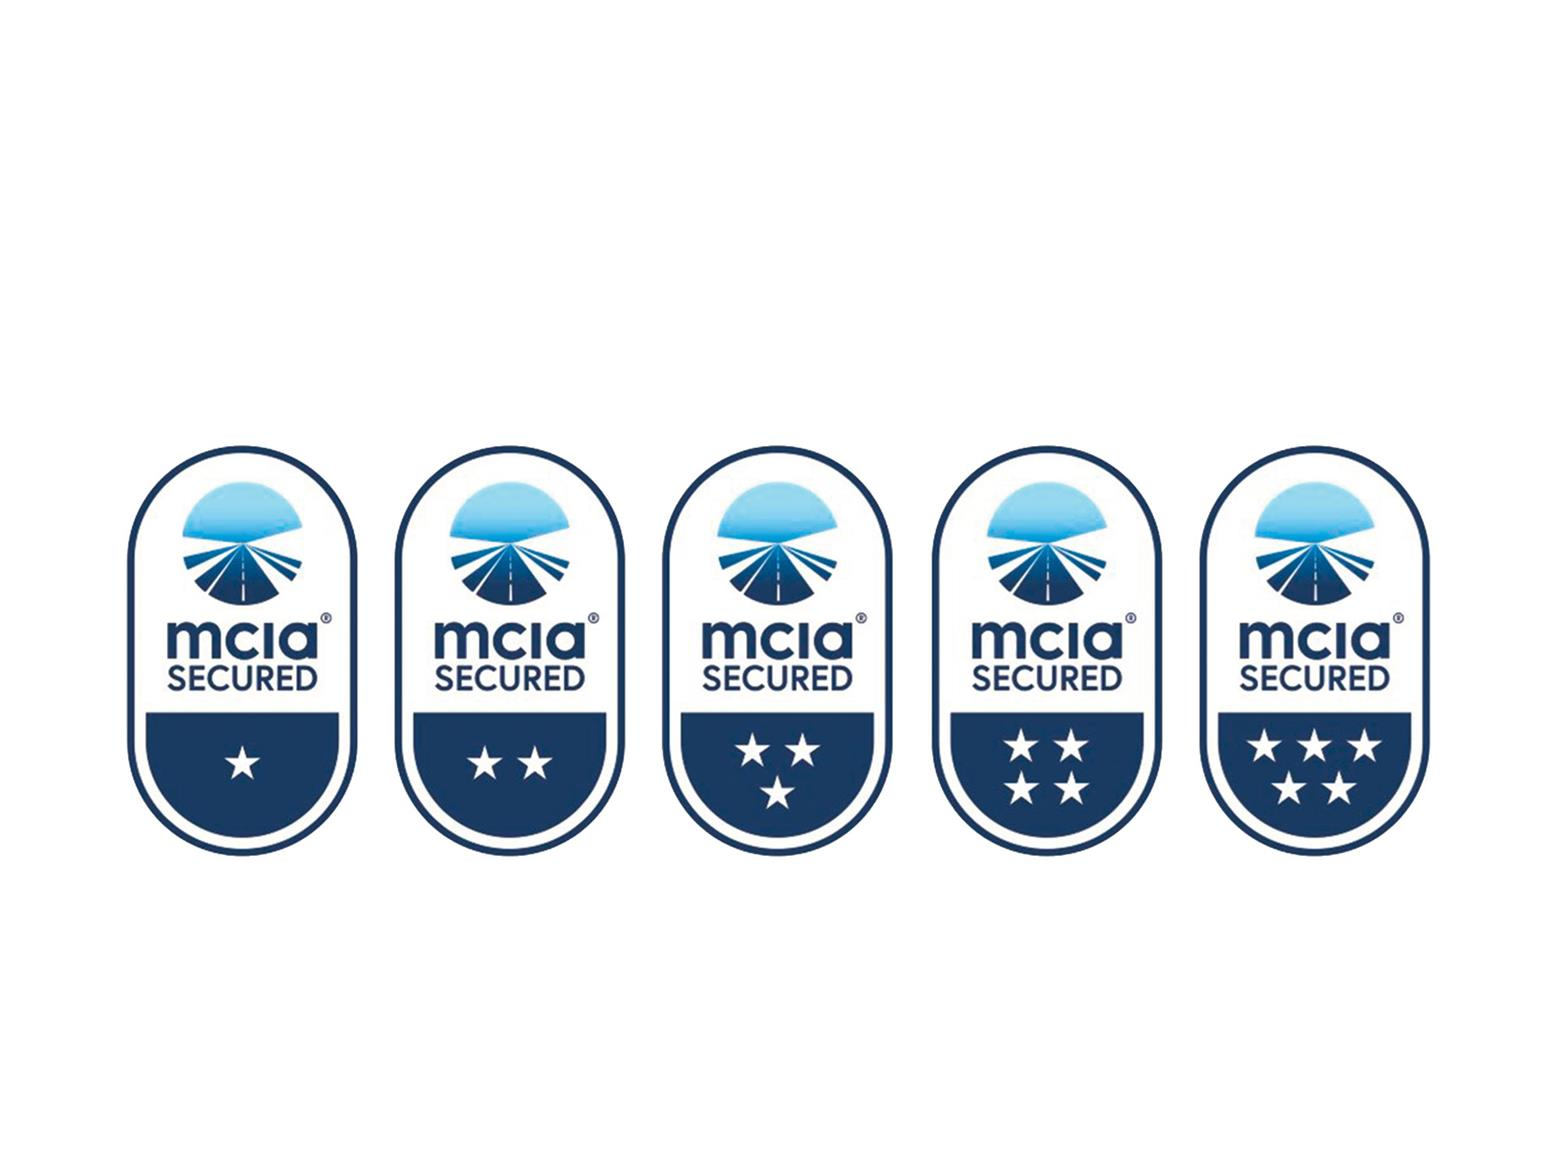 The MCIA star rating system